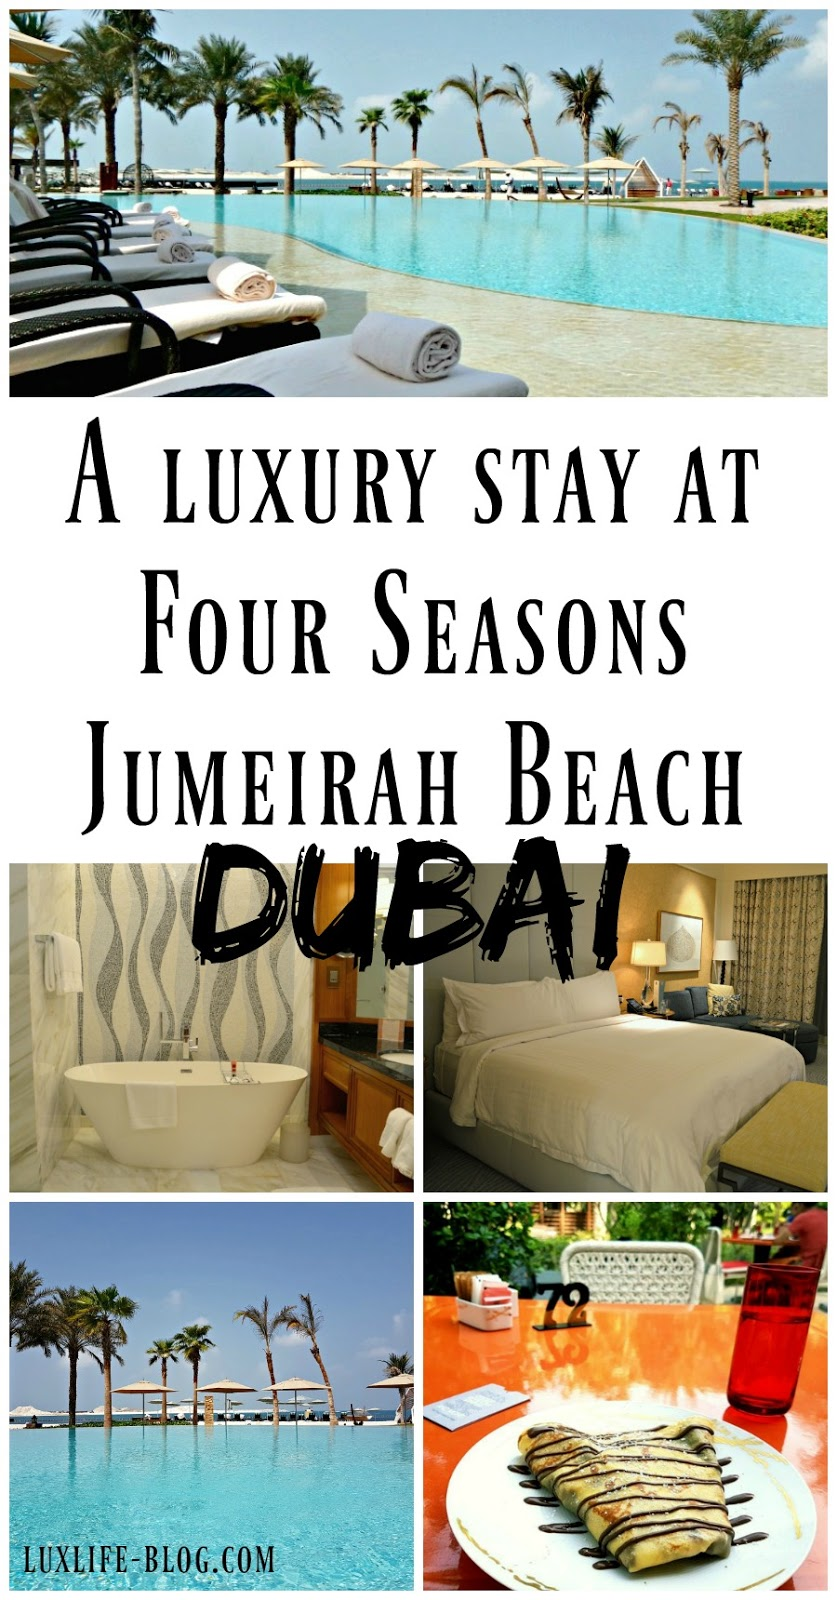 Read all about staying at the Four Seasons Resort Jumeirah Beach in Dubai! One of the most luxurious hotels in Dubai with a stunning outside swimming pool, beautiful rooms, and 11 onsite bars and restaurants! You can even have crepes, waffles, and ice-cream for breakfast!!